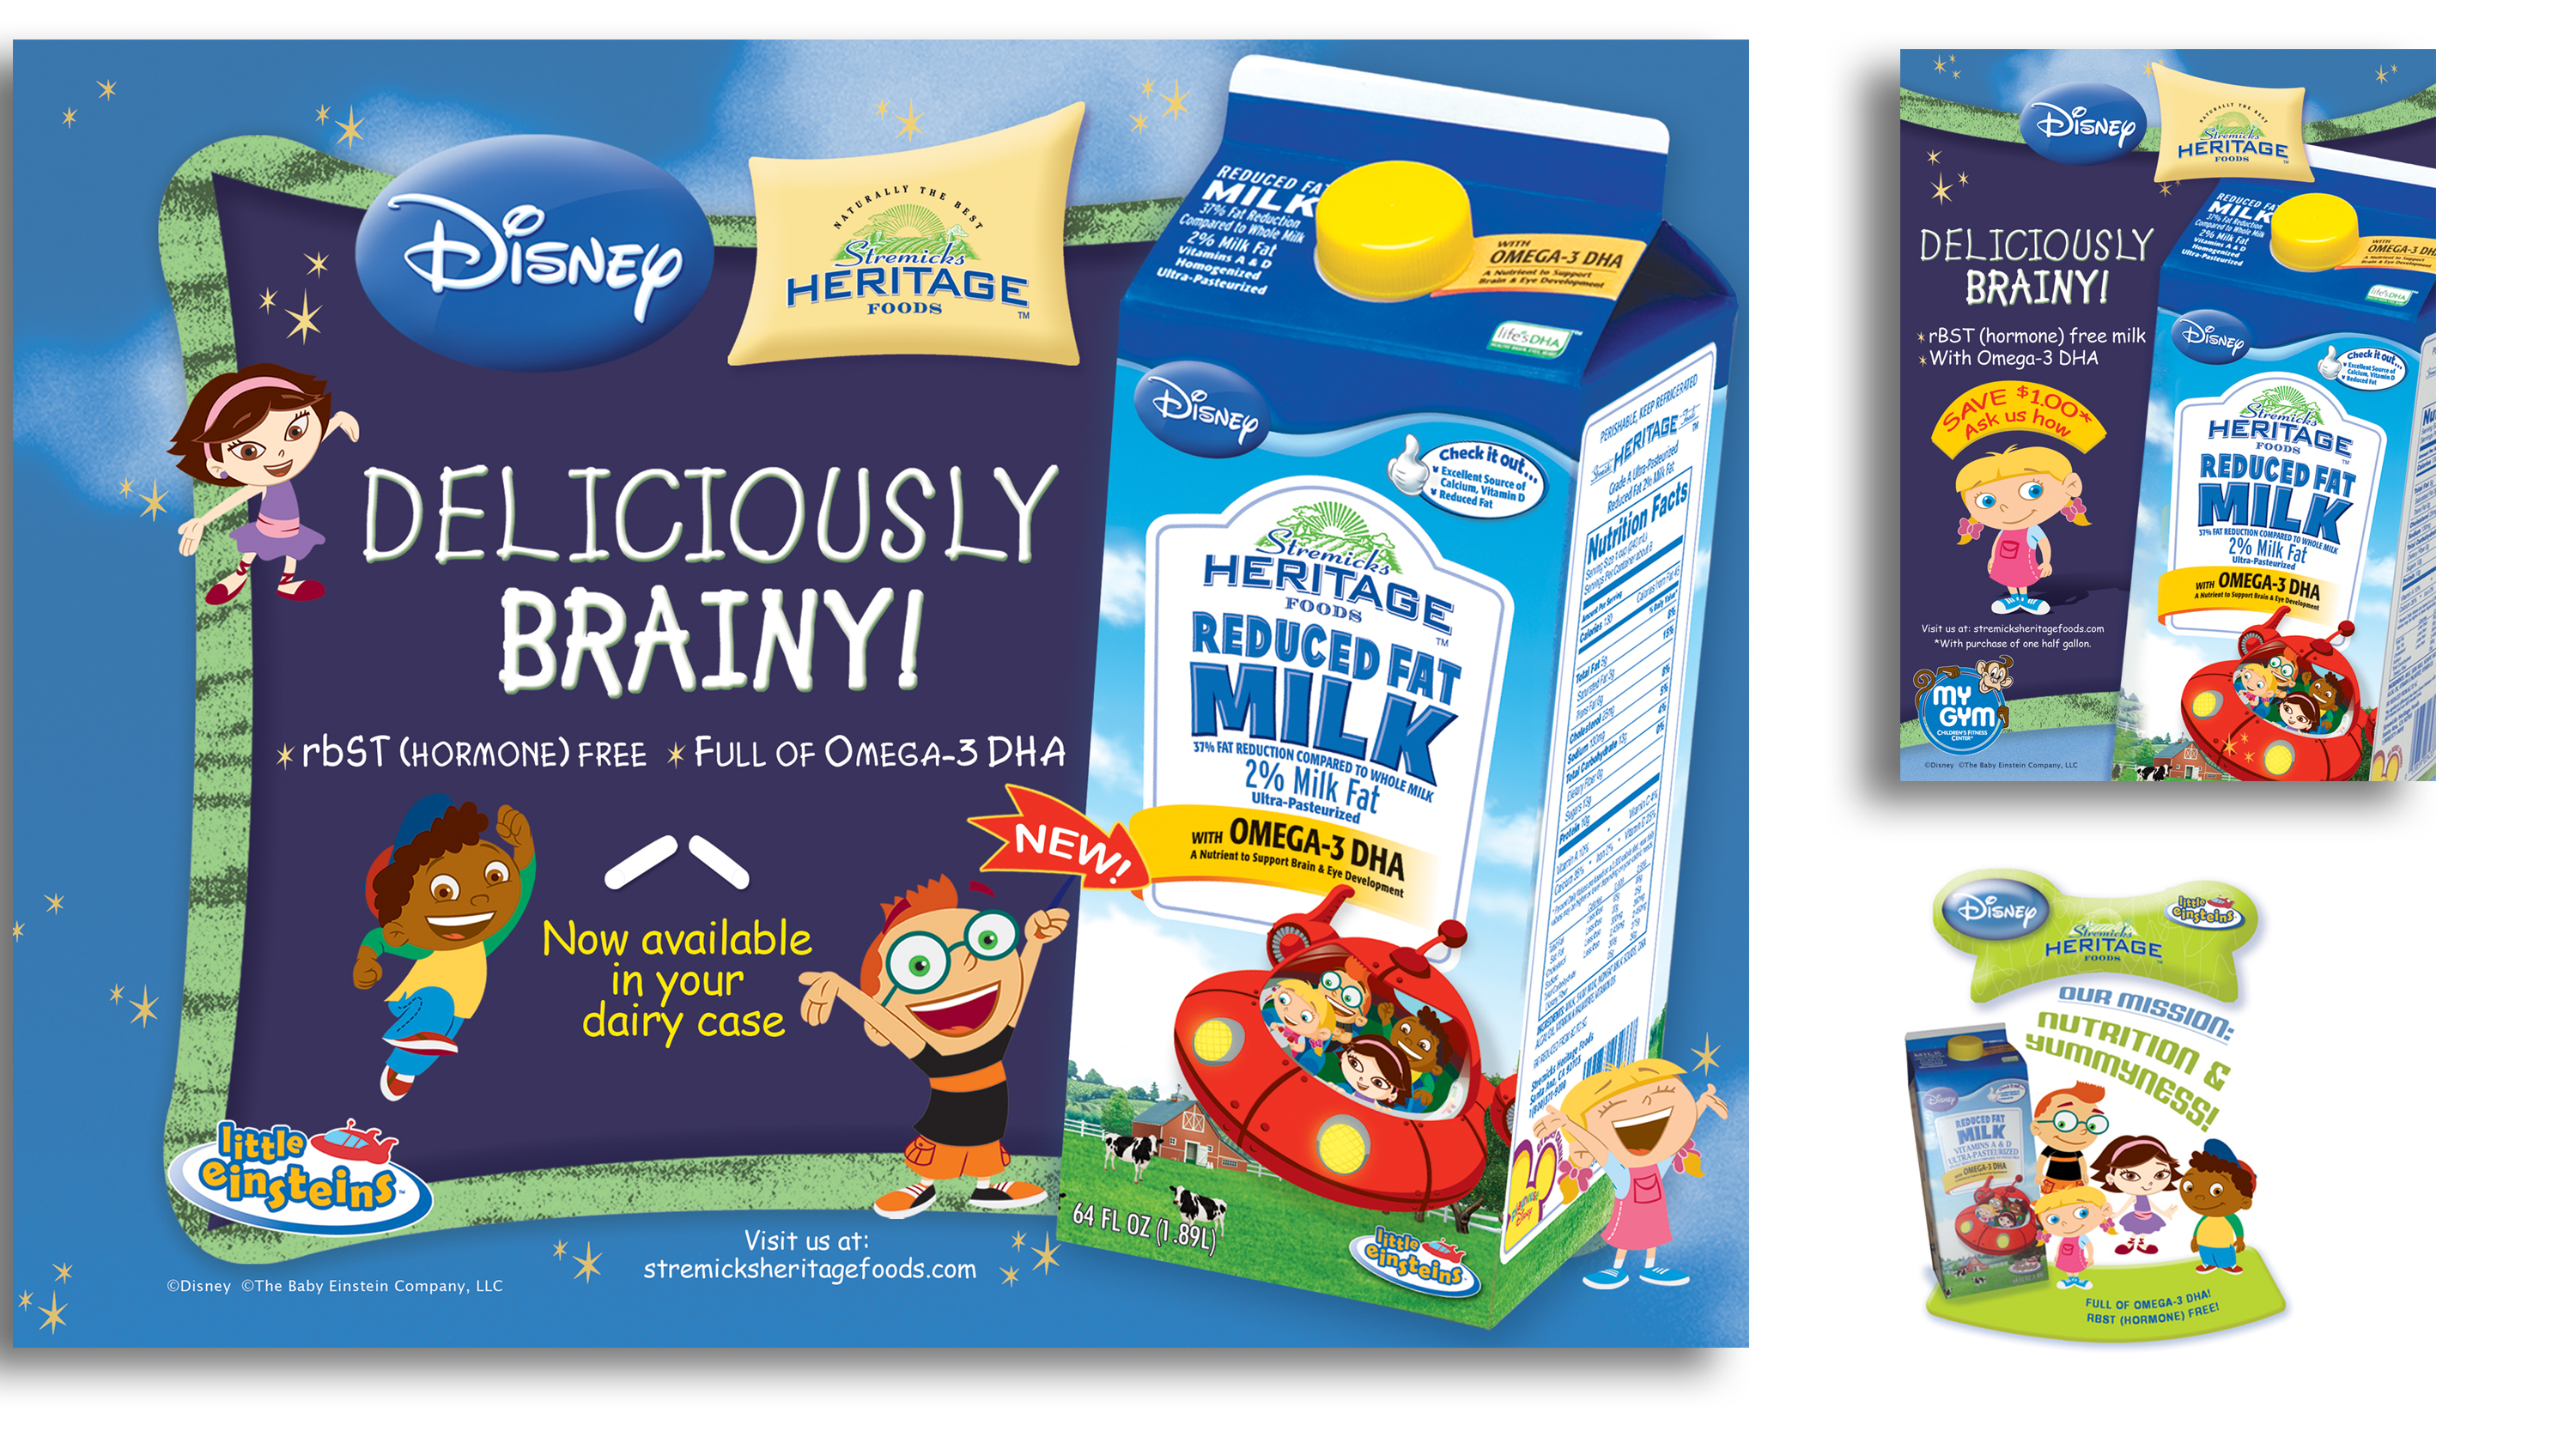 Disney's Little Einsteins and Stremicks Heritage Foods Co-op  Ads